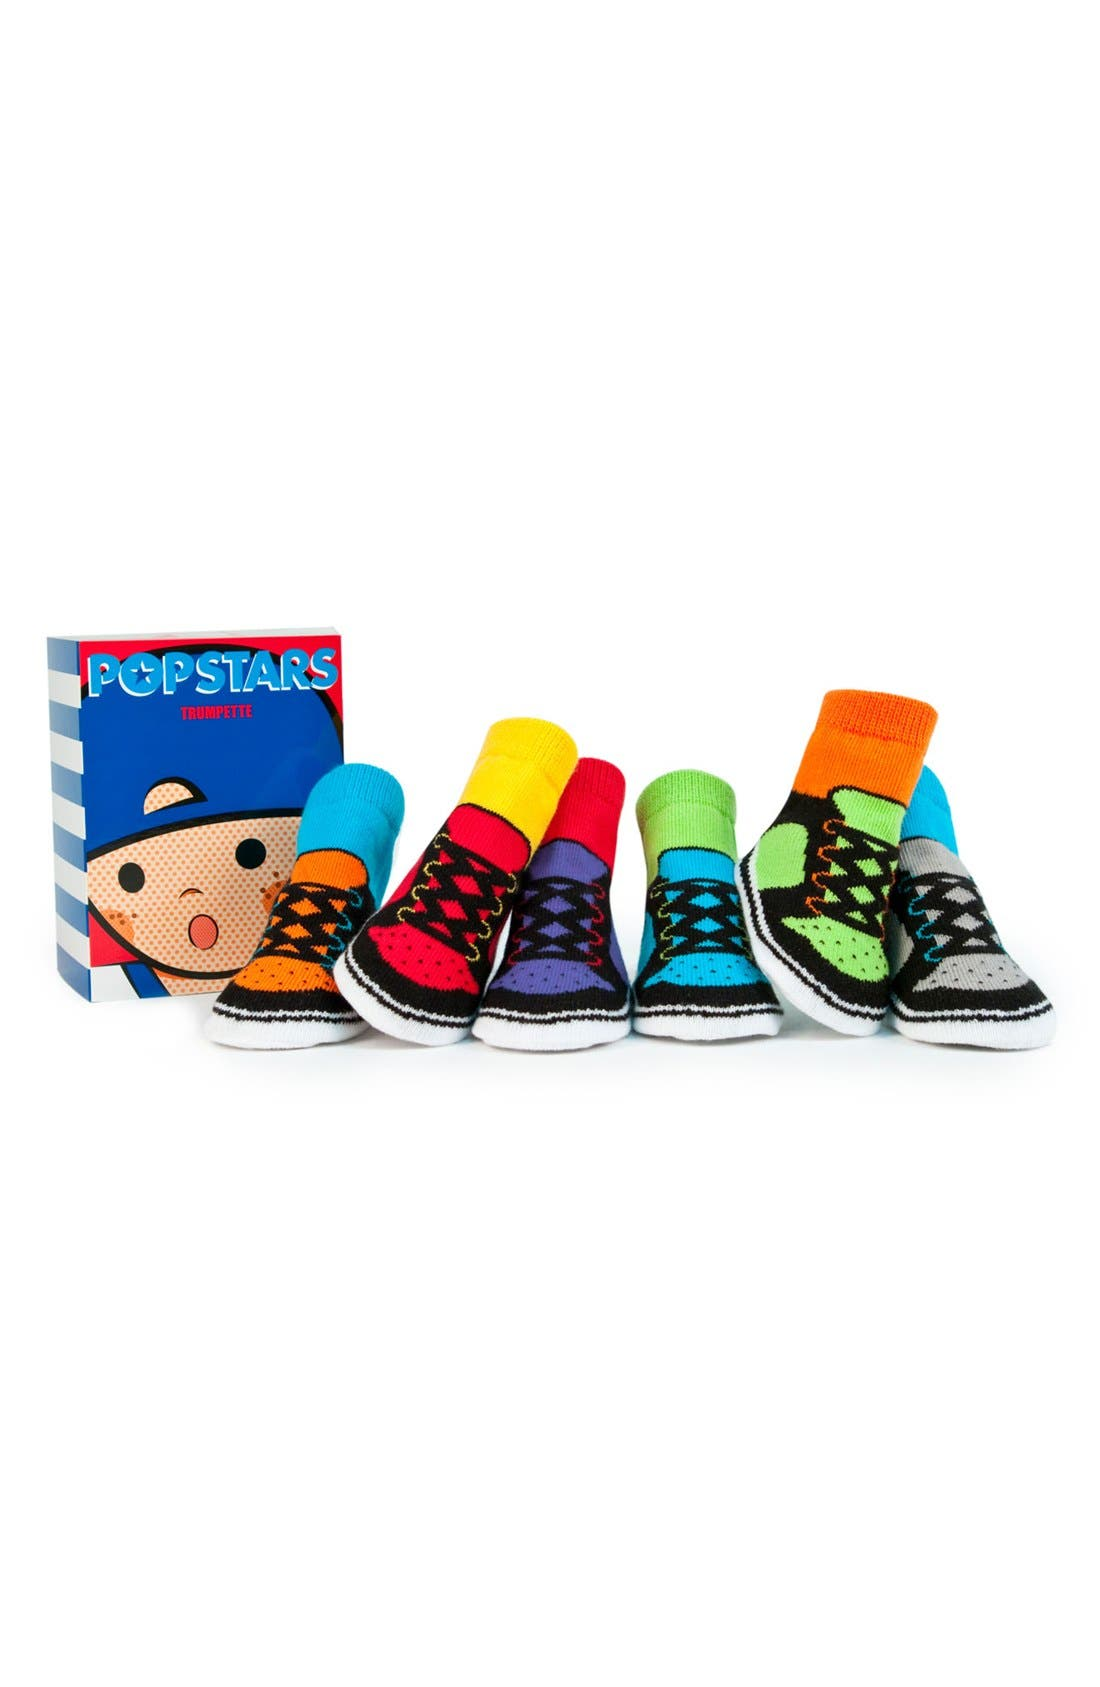 Main Image - Trumpette 'Pop Stars' Socks Gift Set (6-Pack)(Baby Boys)